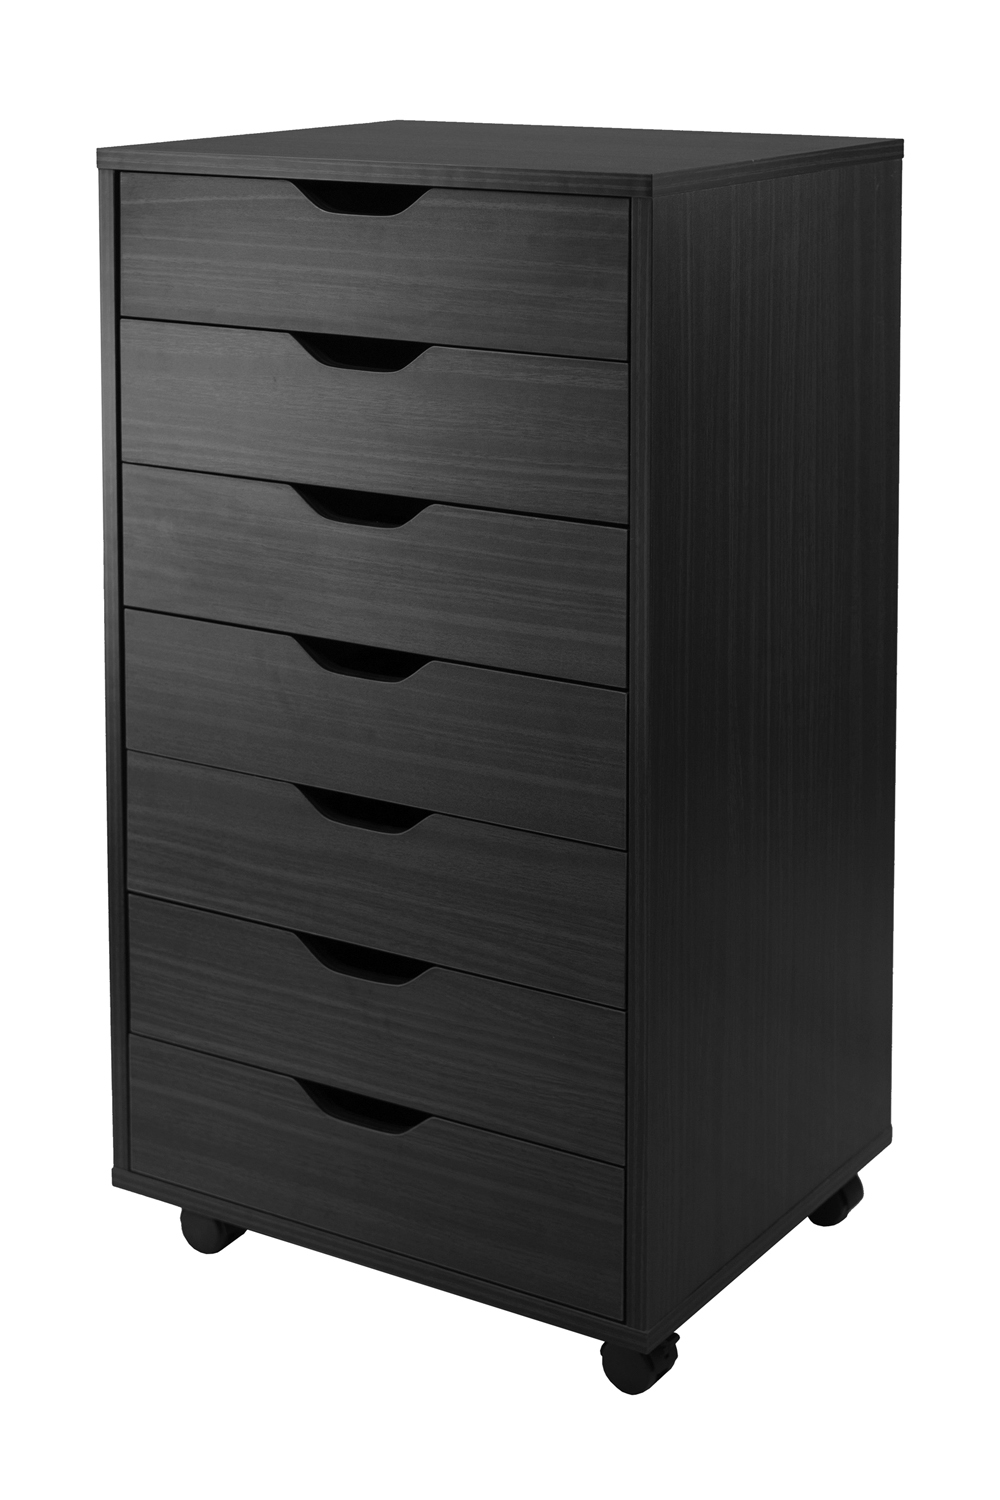 Wood Closet Organizers With Drawers ~ Winsome halifax wooden closet storage cabinet with